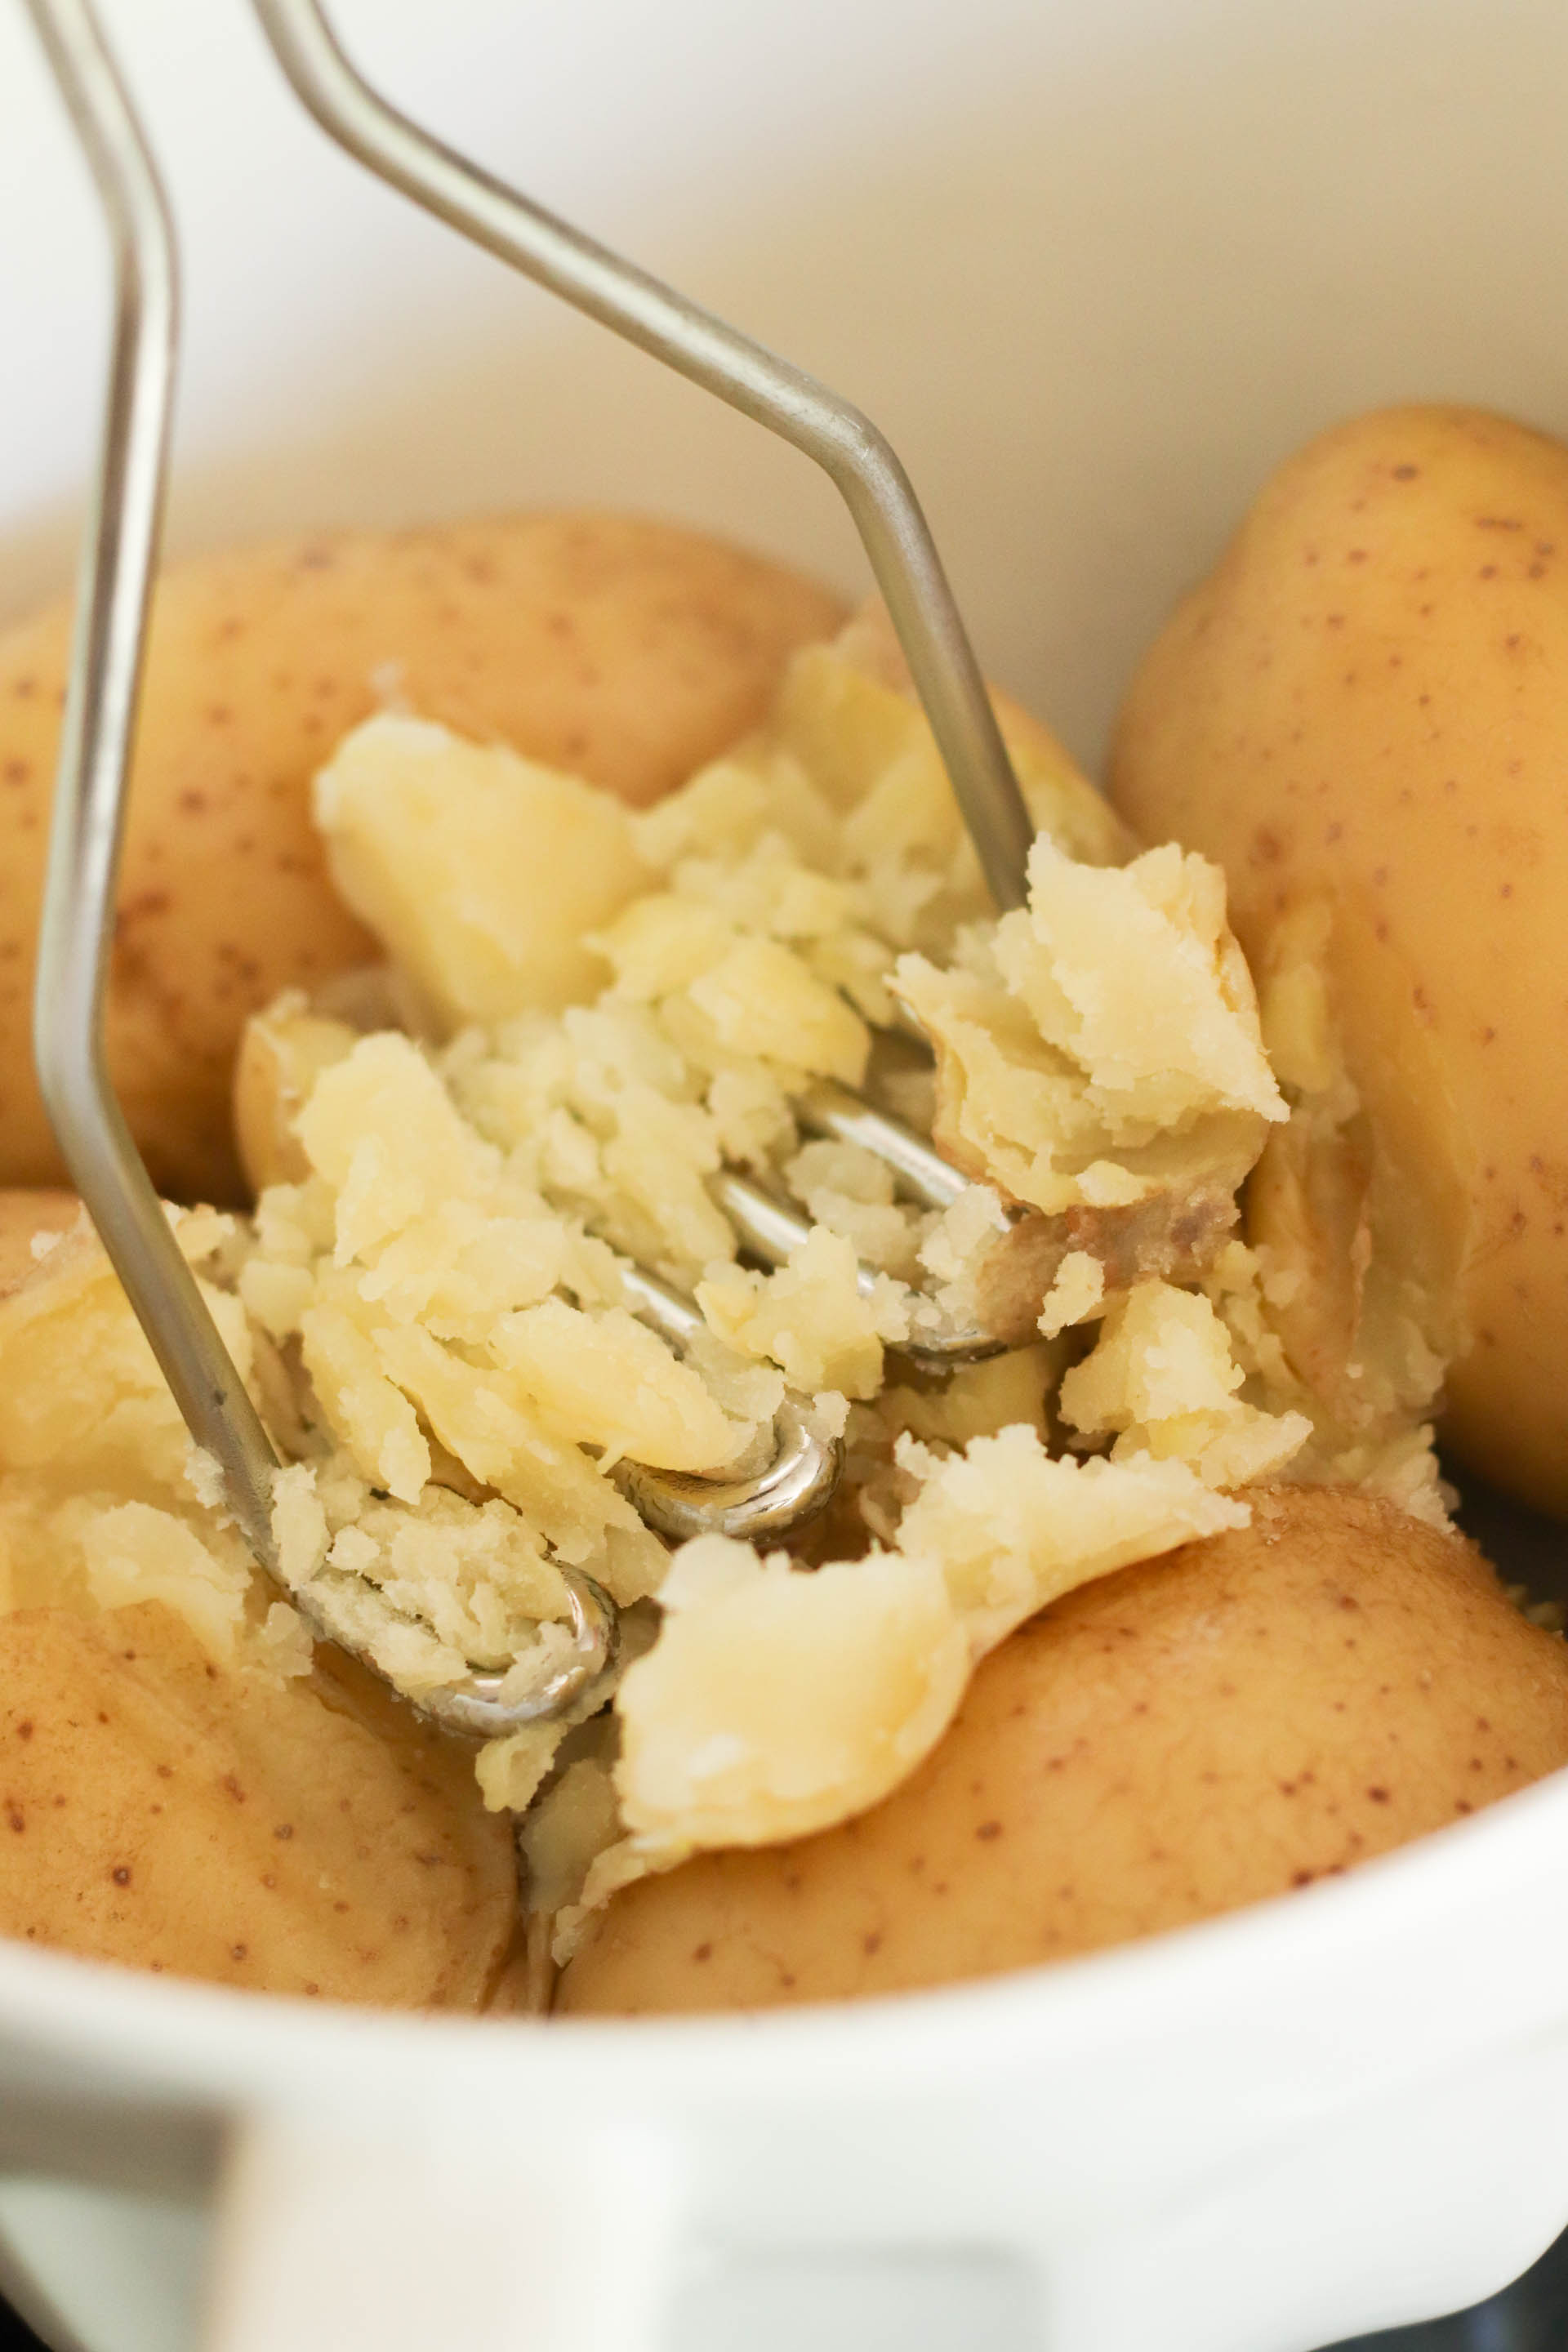 Mashing cooked potatoes